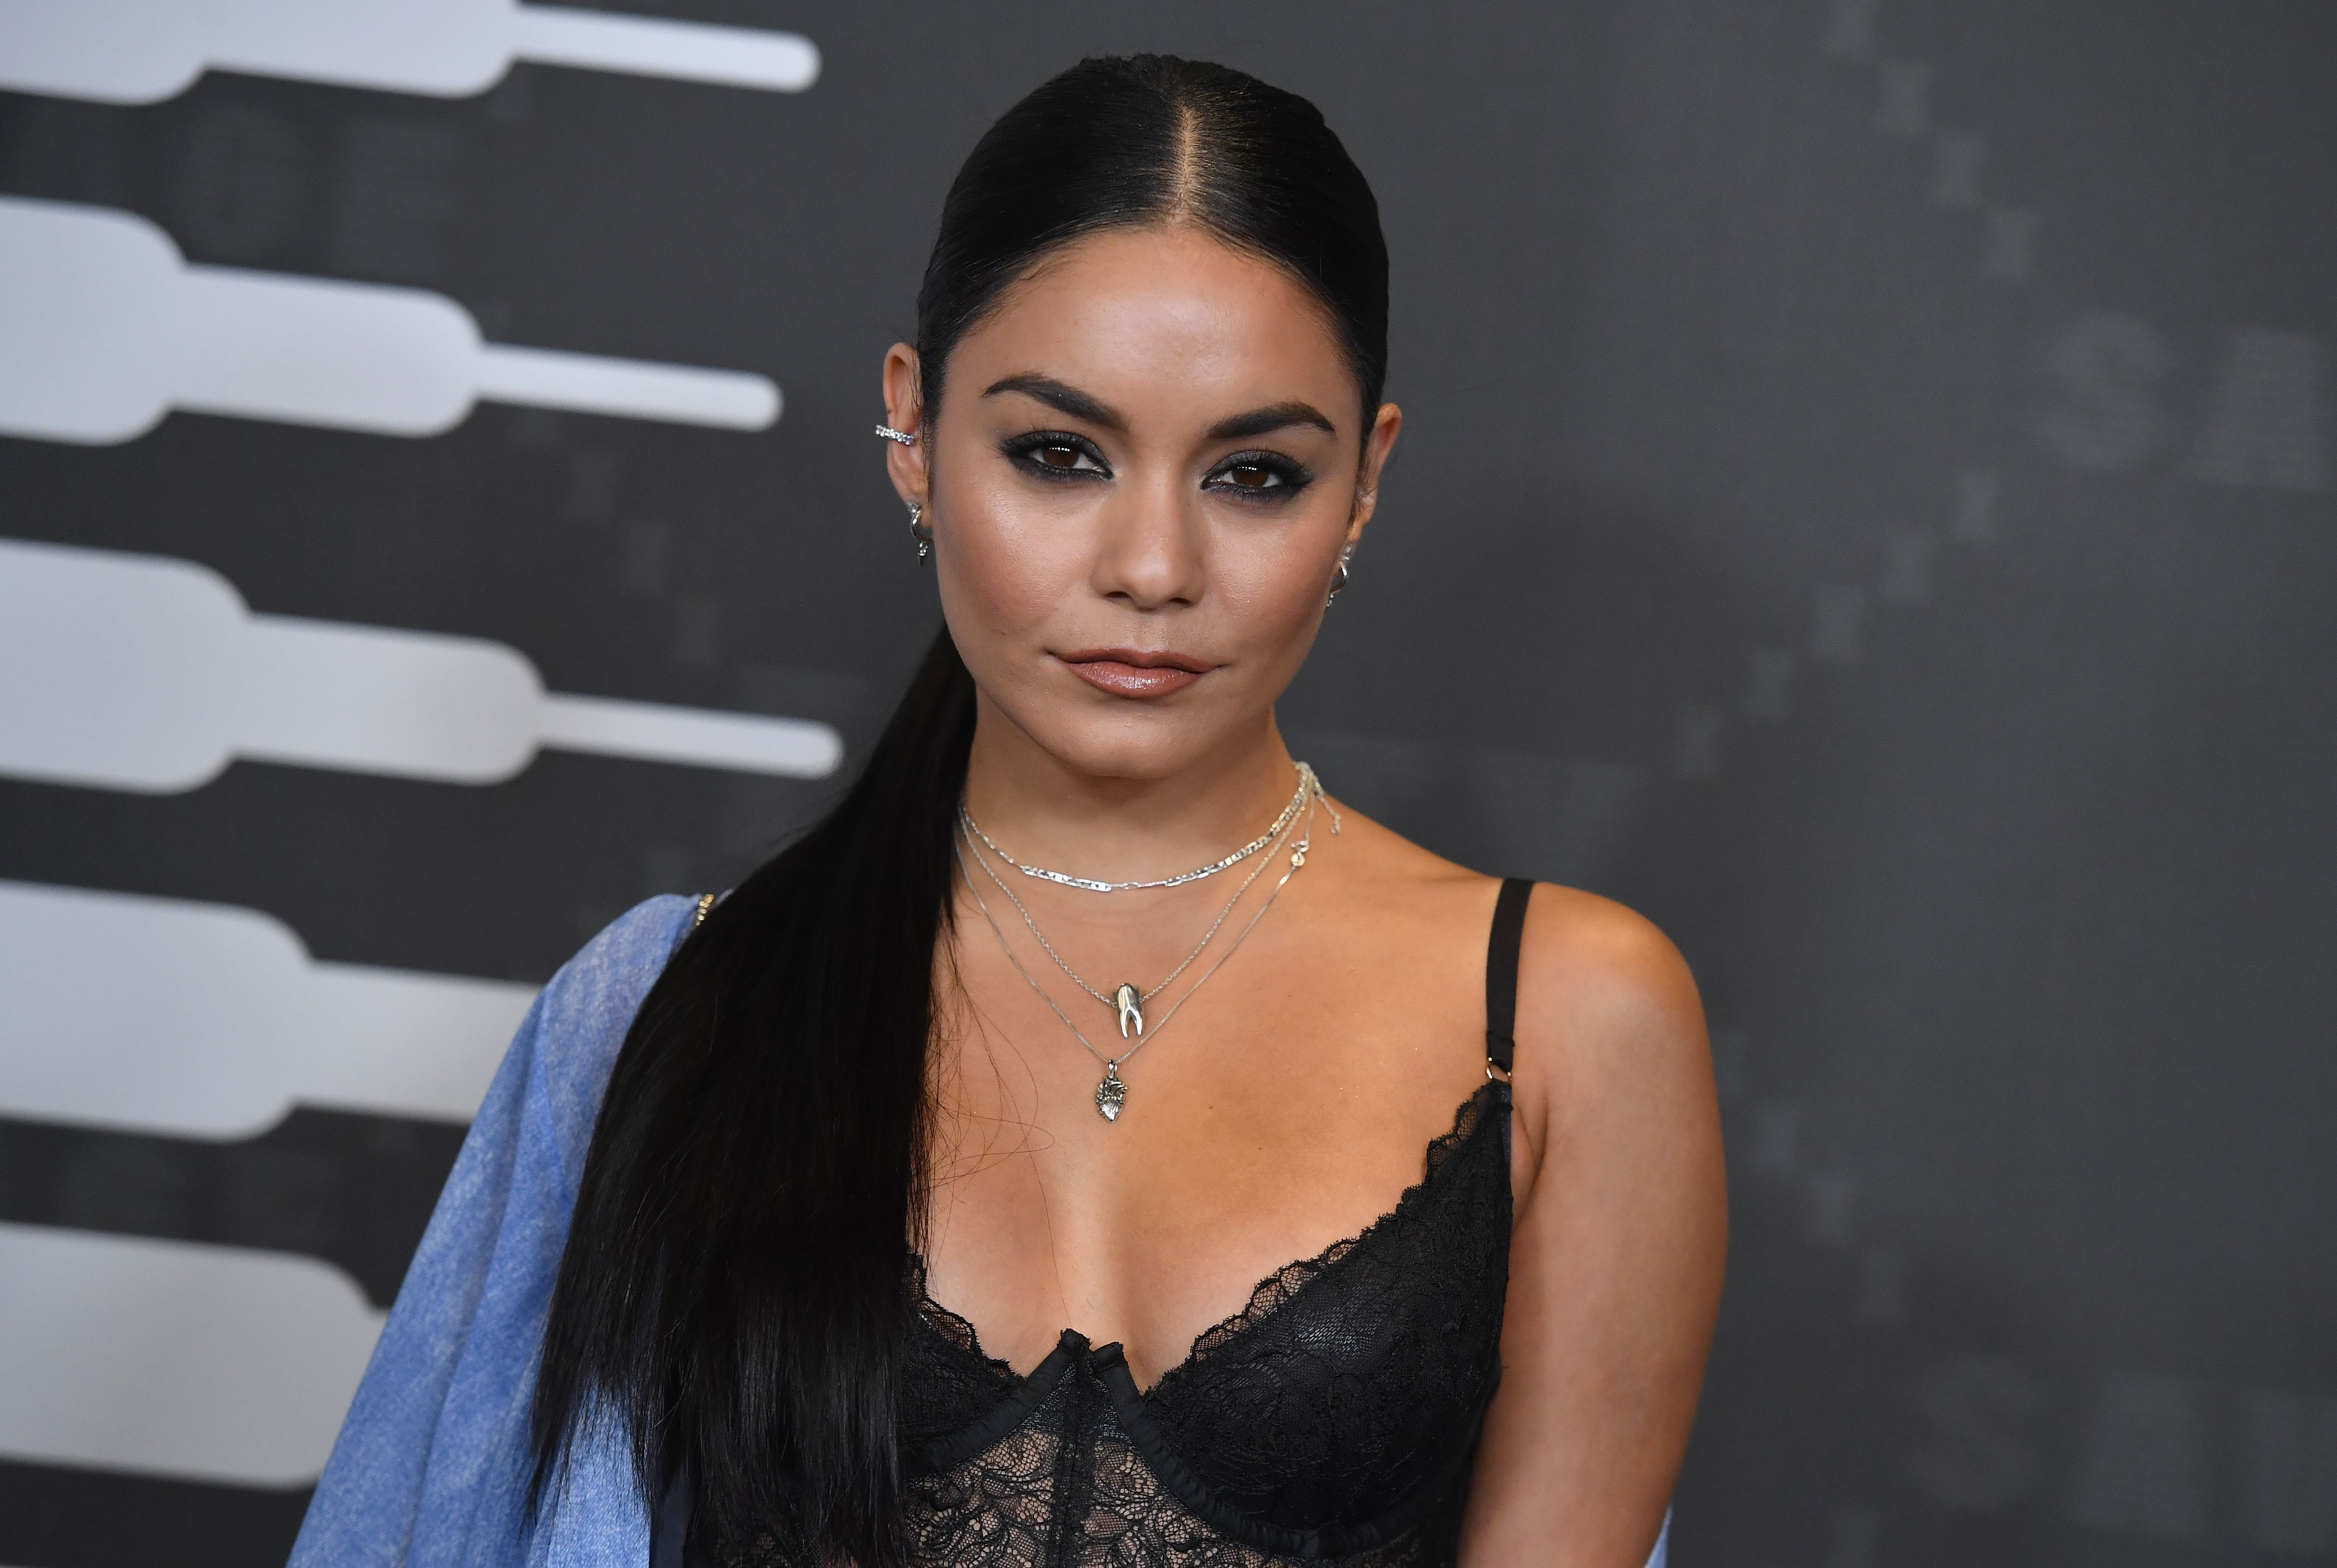 US singer Vanessa Hudgens arrives for the Savage X Fenty Show Presented By Amazon Prime Video at Barclays Center on September 10, 2019 in Brooklyn, New York. (Photo by Angela Weiss / AFP)        (Photo credit should read ANGELA WEISS/AFP via Getty Images)